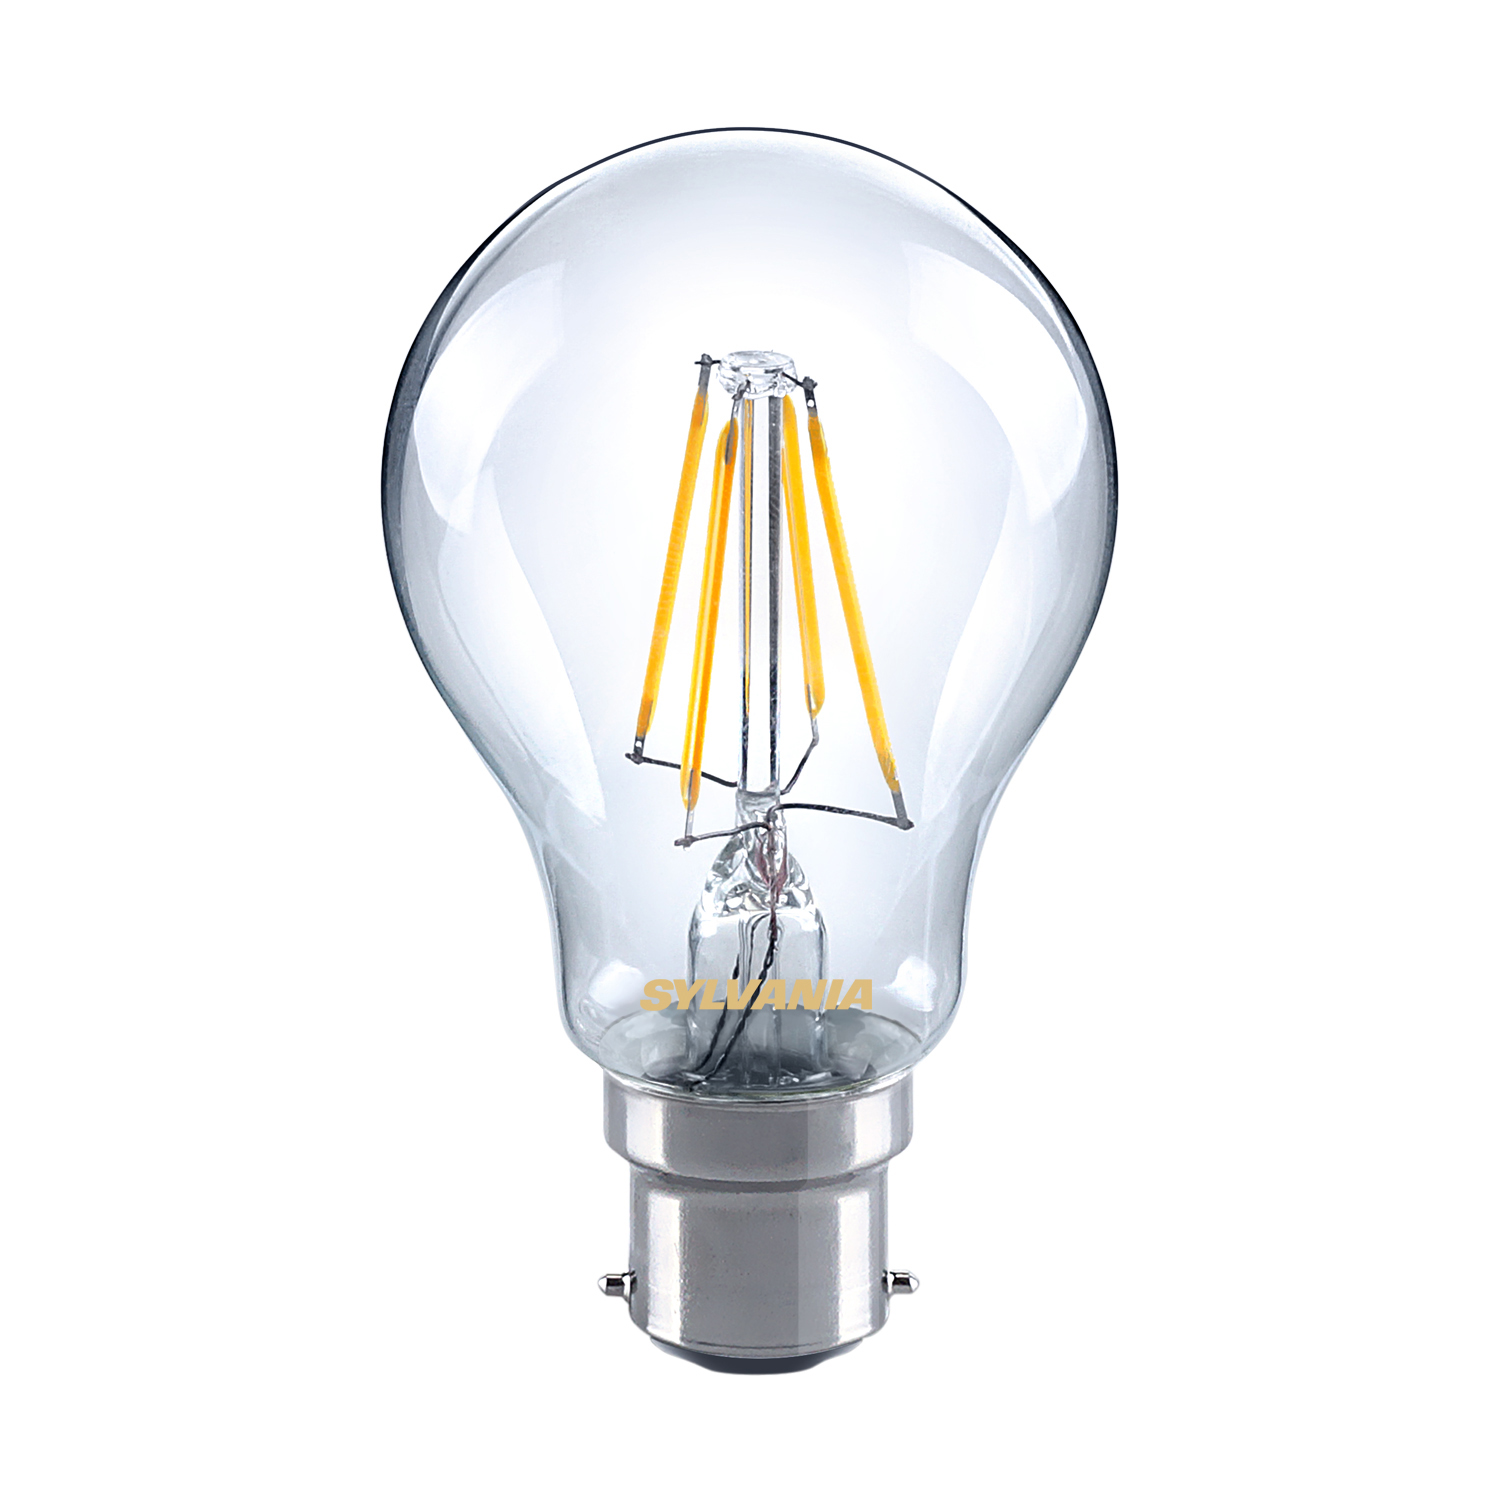 Sylvania 5w led gls traditional light bulb b22 bc warm white 2700k non dimmable liminaires Sylvania bulb